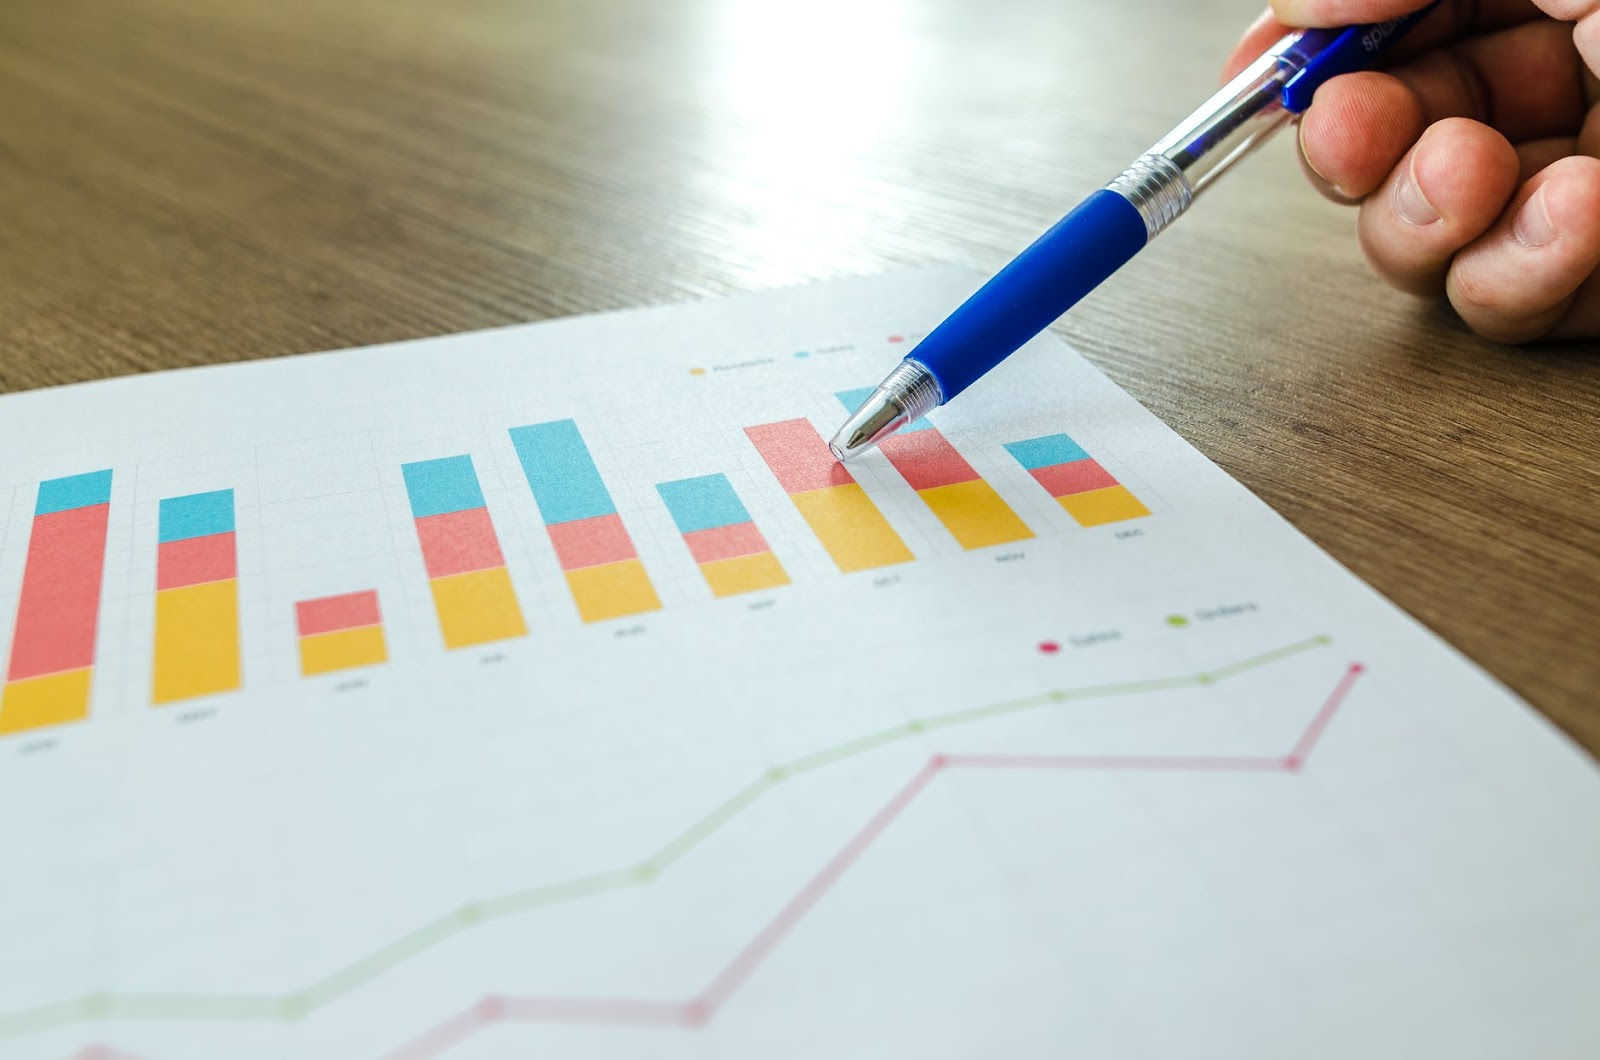 pen pointing on a piece of paper with analytics charts